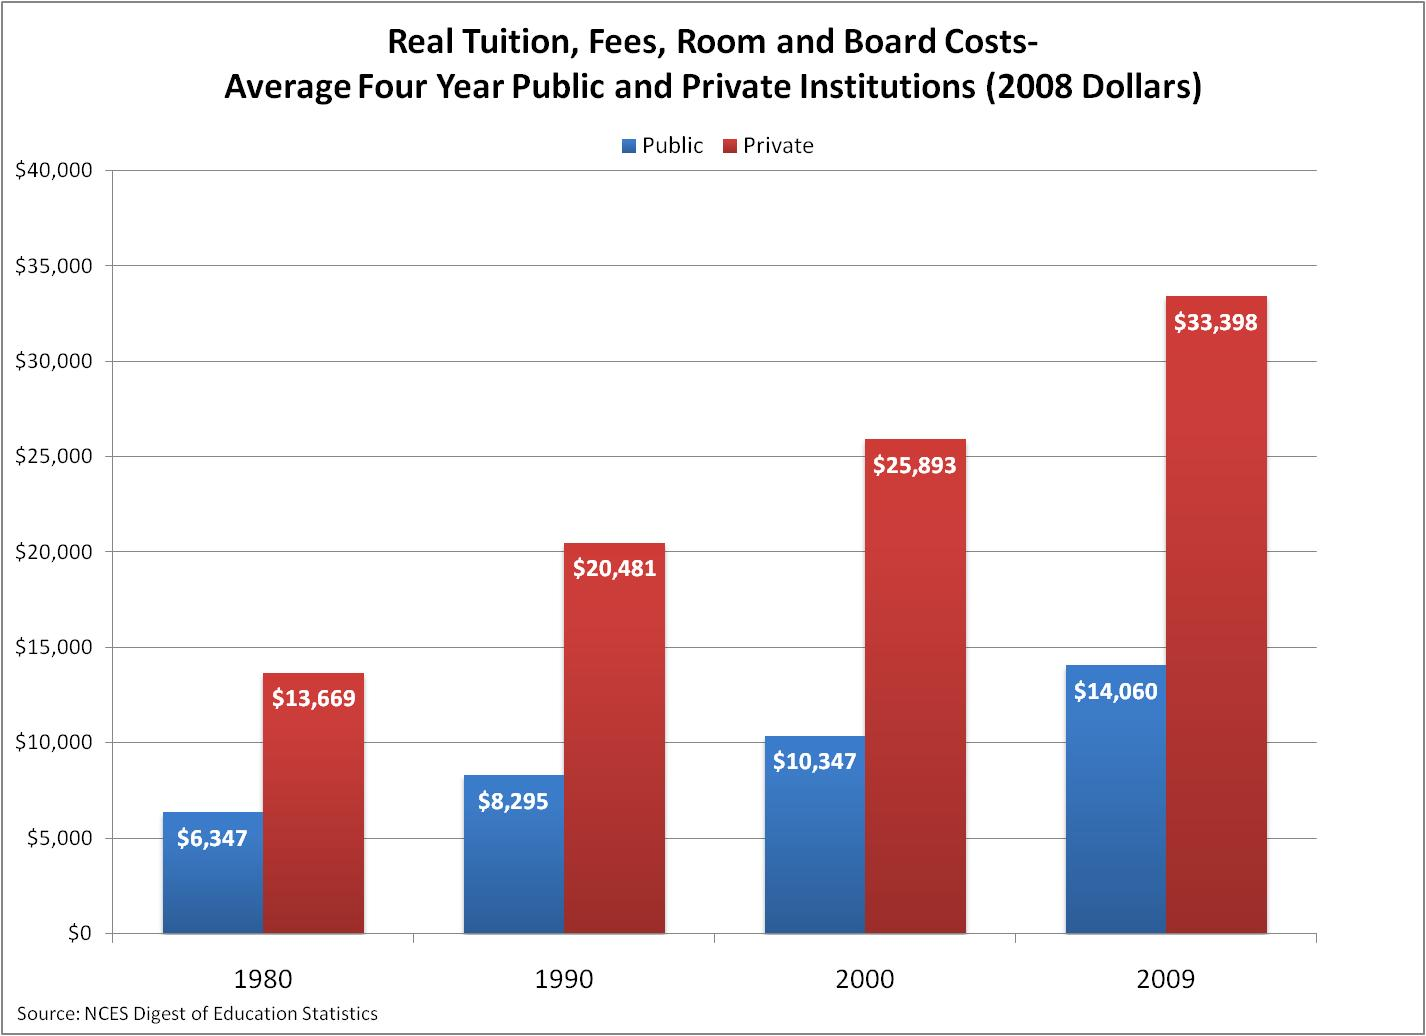 an analysis of the rising tuition fees in college In 1971 the tuition, fees, room, and board per year for a public 4-year college was $8,734 in dec 2017 dollars ($1,410 unadjusted) by 2016 the cost had risen to $20,967 per year in dec 2017 dollars ($20,150 unadjusted), a 1401% increase.